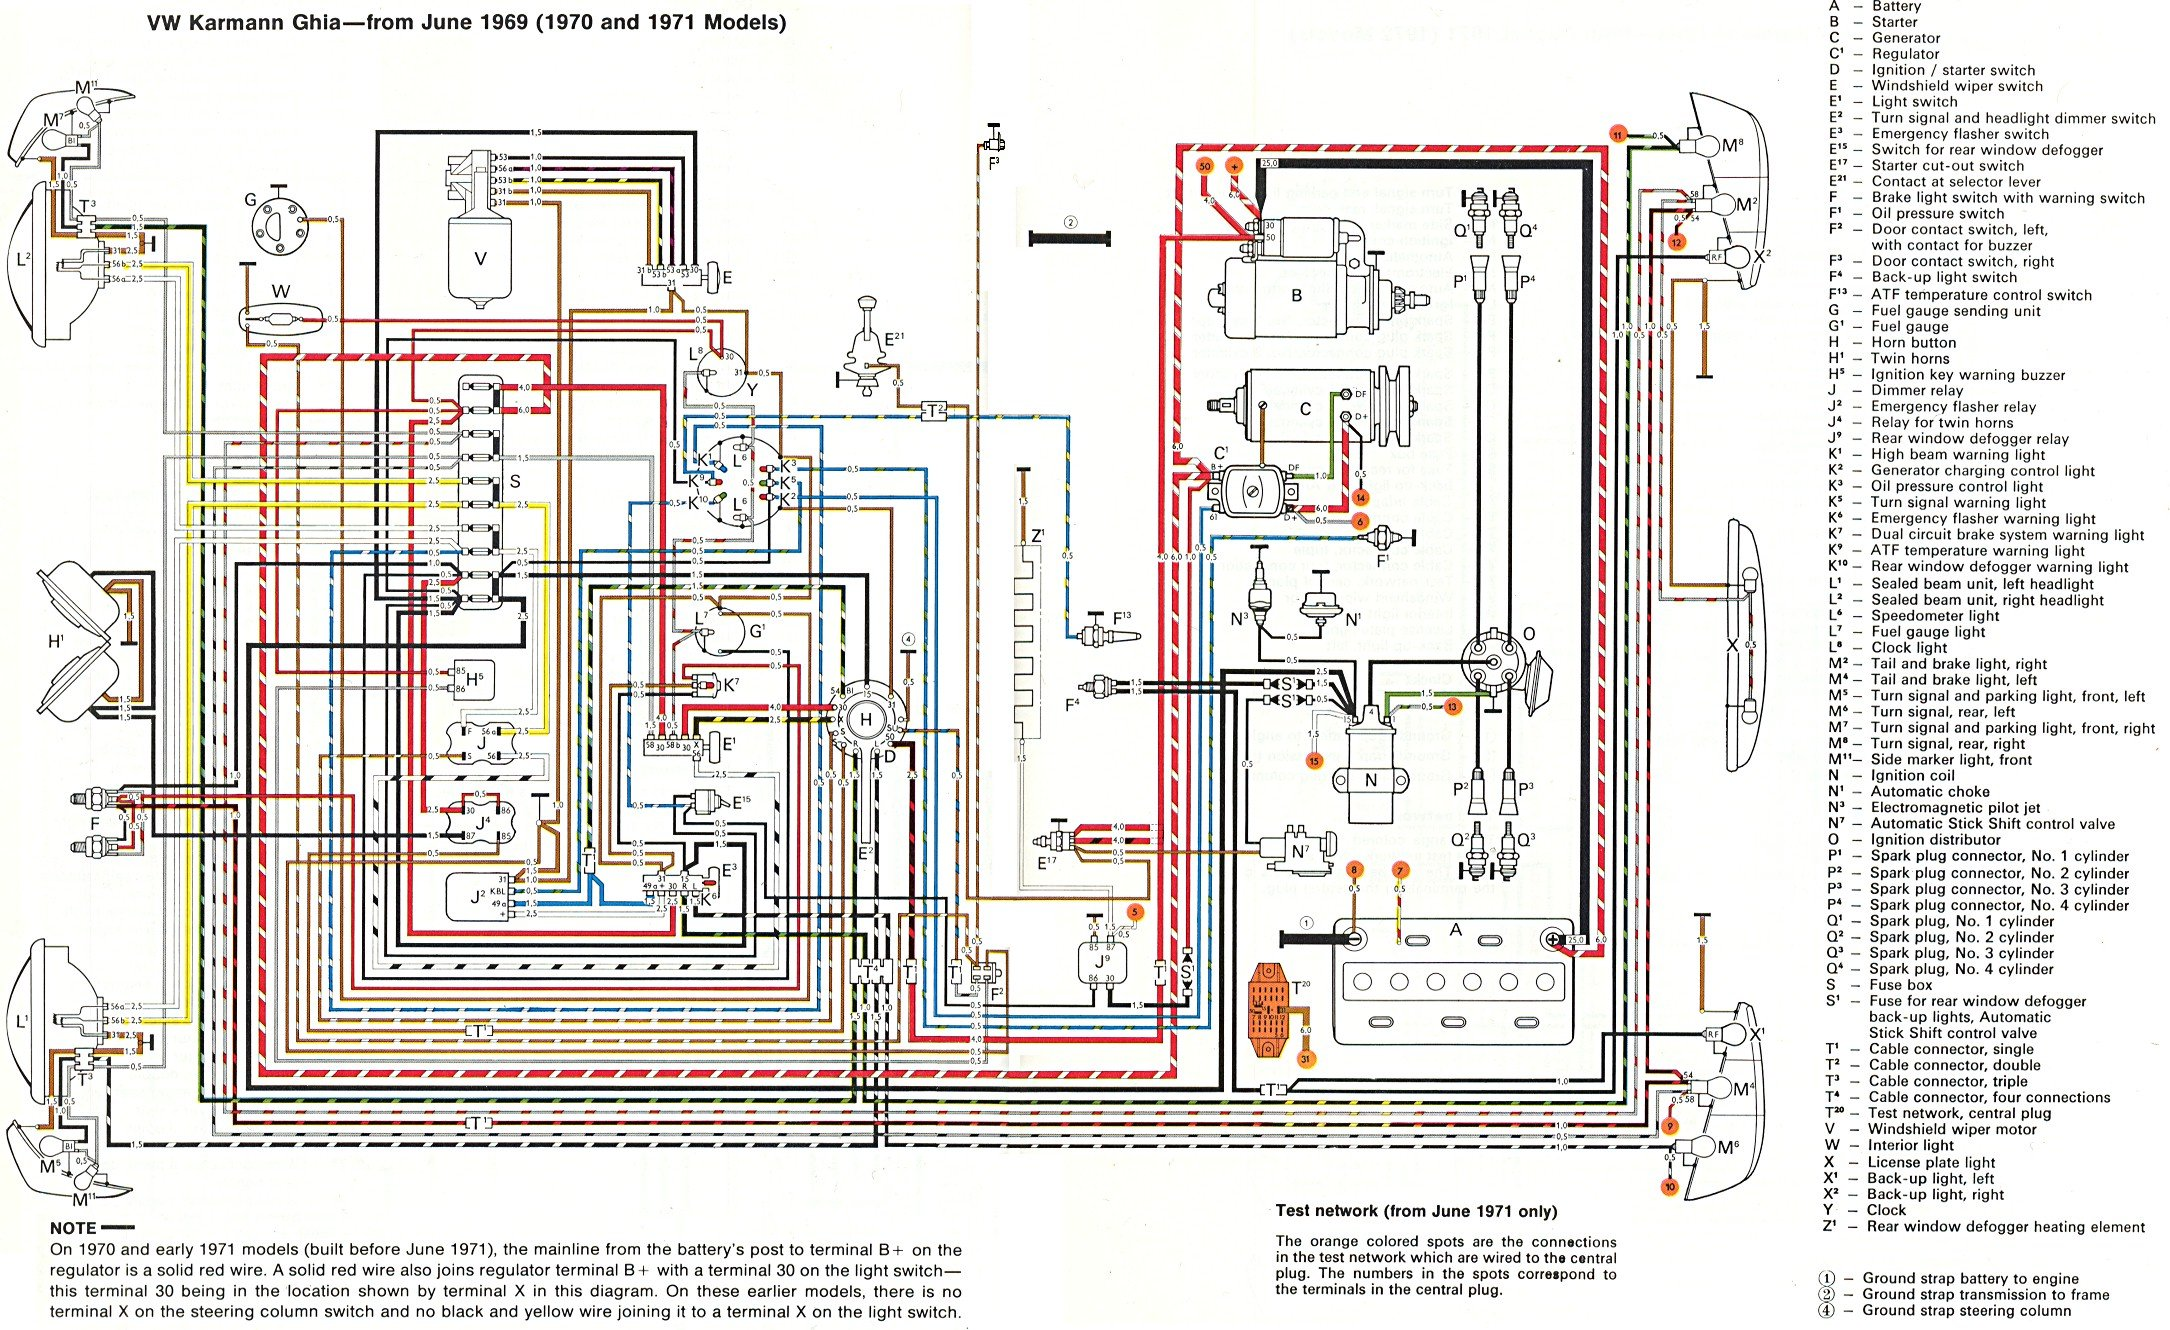 Daihatsu Hijet Engine Compartment Diagram Wiring Library Manual Thesamba Com Karmann Ghia Diagrams Rh